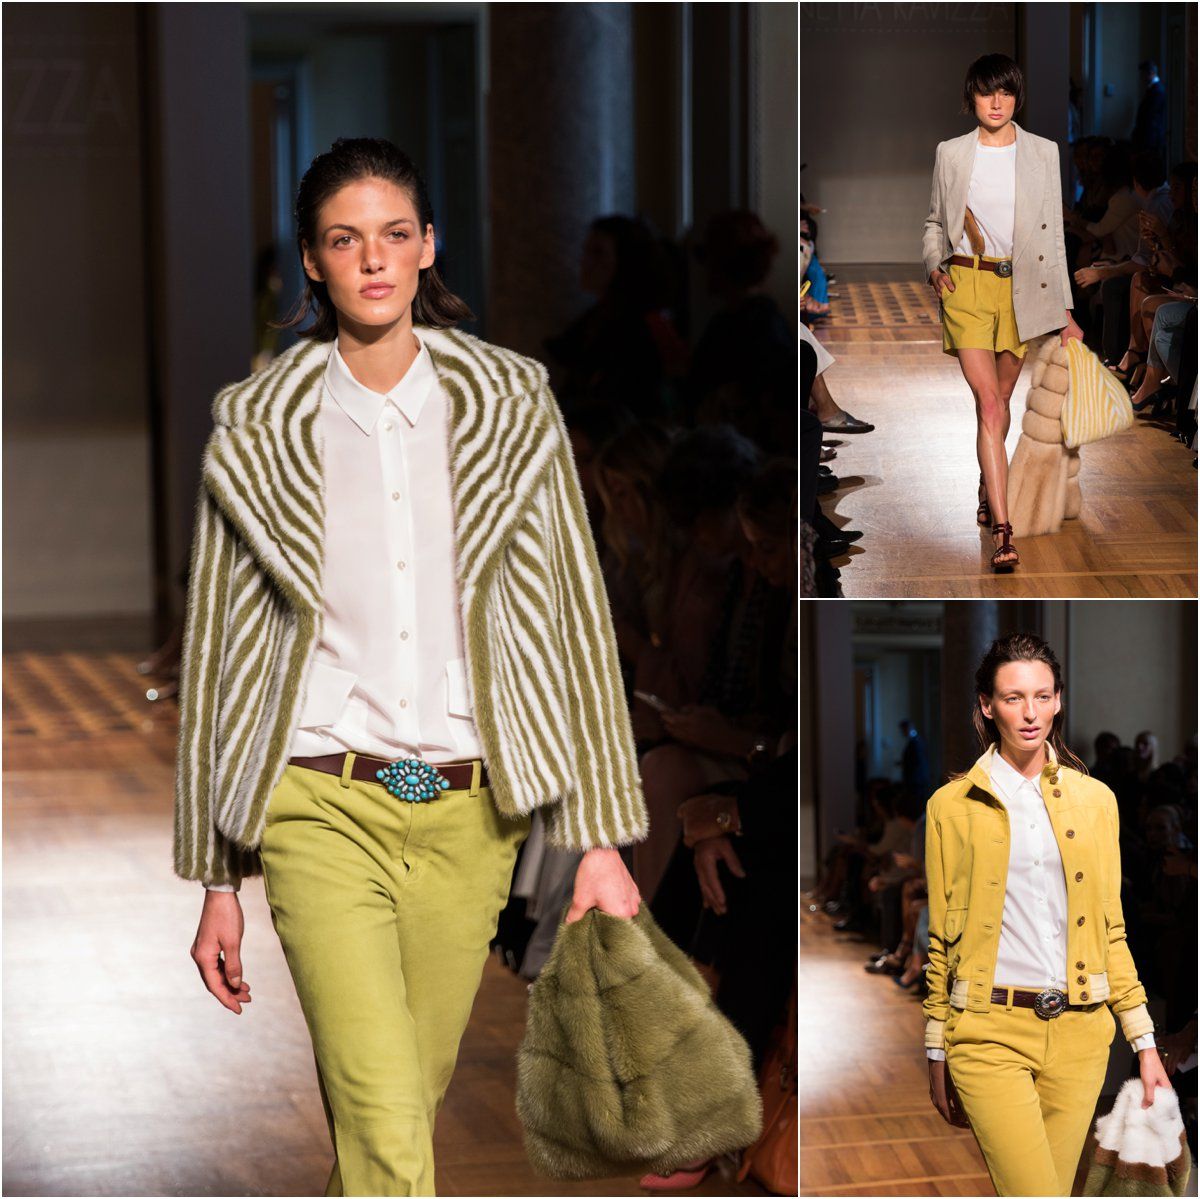 simonetta-ravizza-runway-show-milan-fashion-week-fur-jackets-with-furrissima-bag-green-pants-70s-inspired-colors